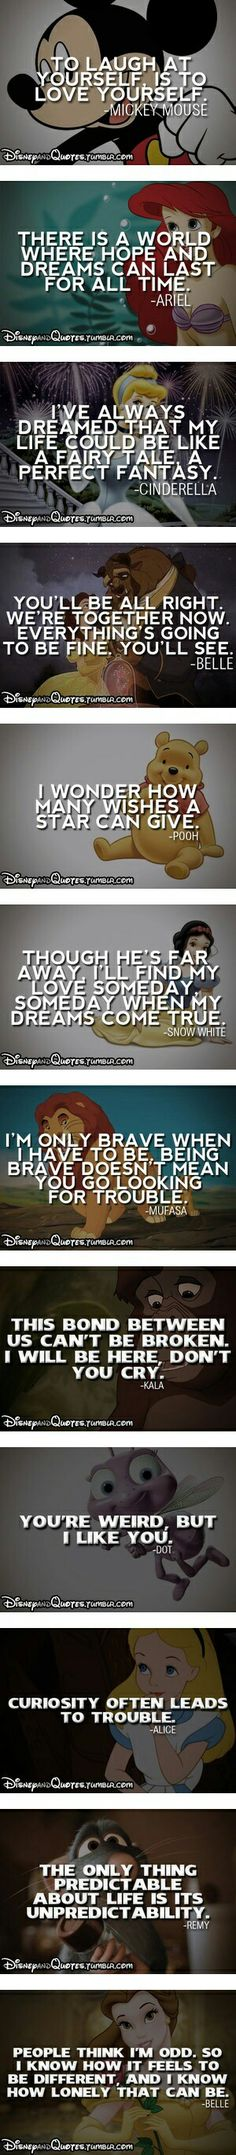 Disney quotes, obviously cool.